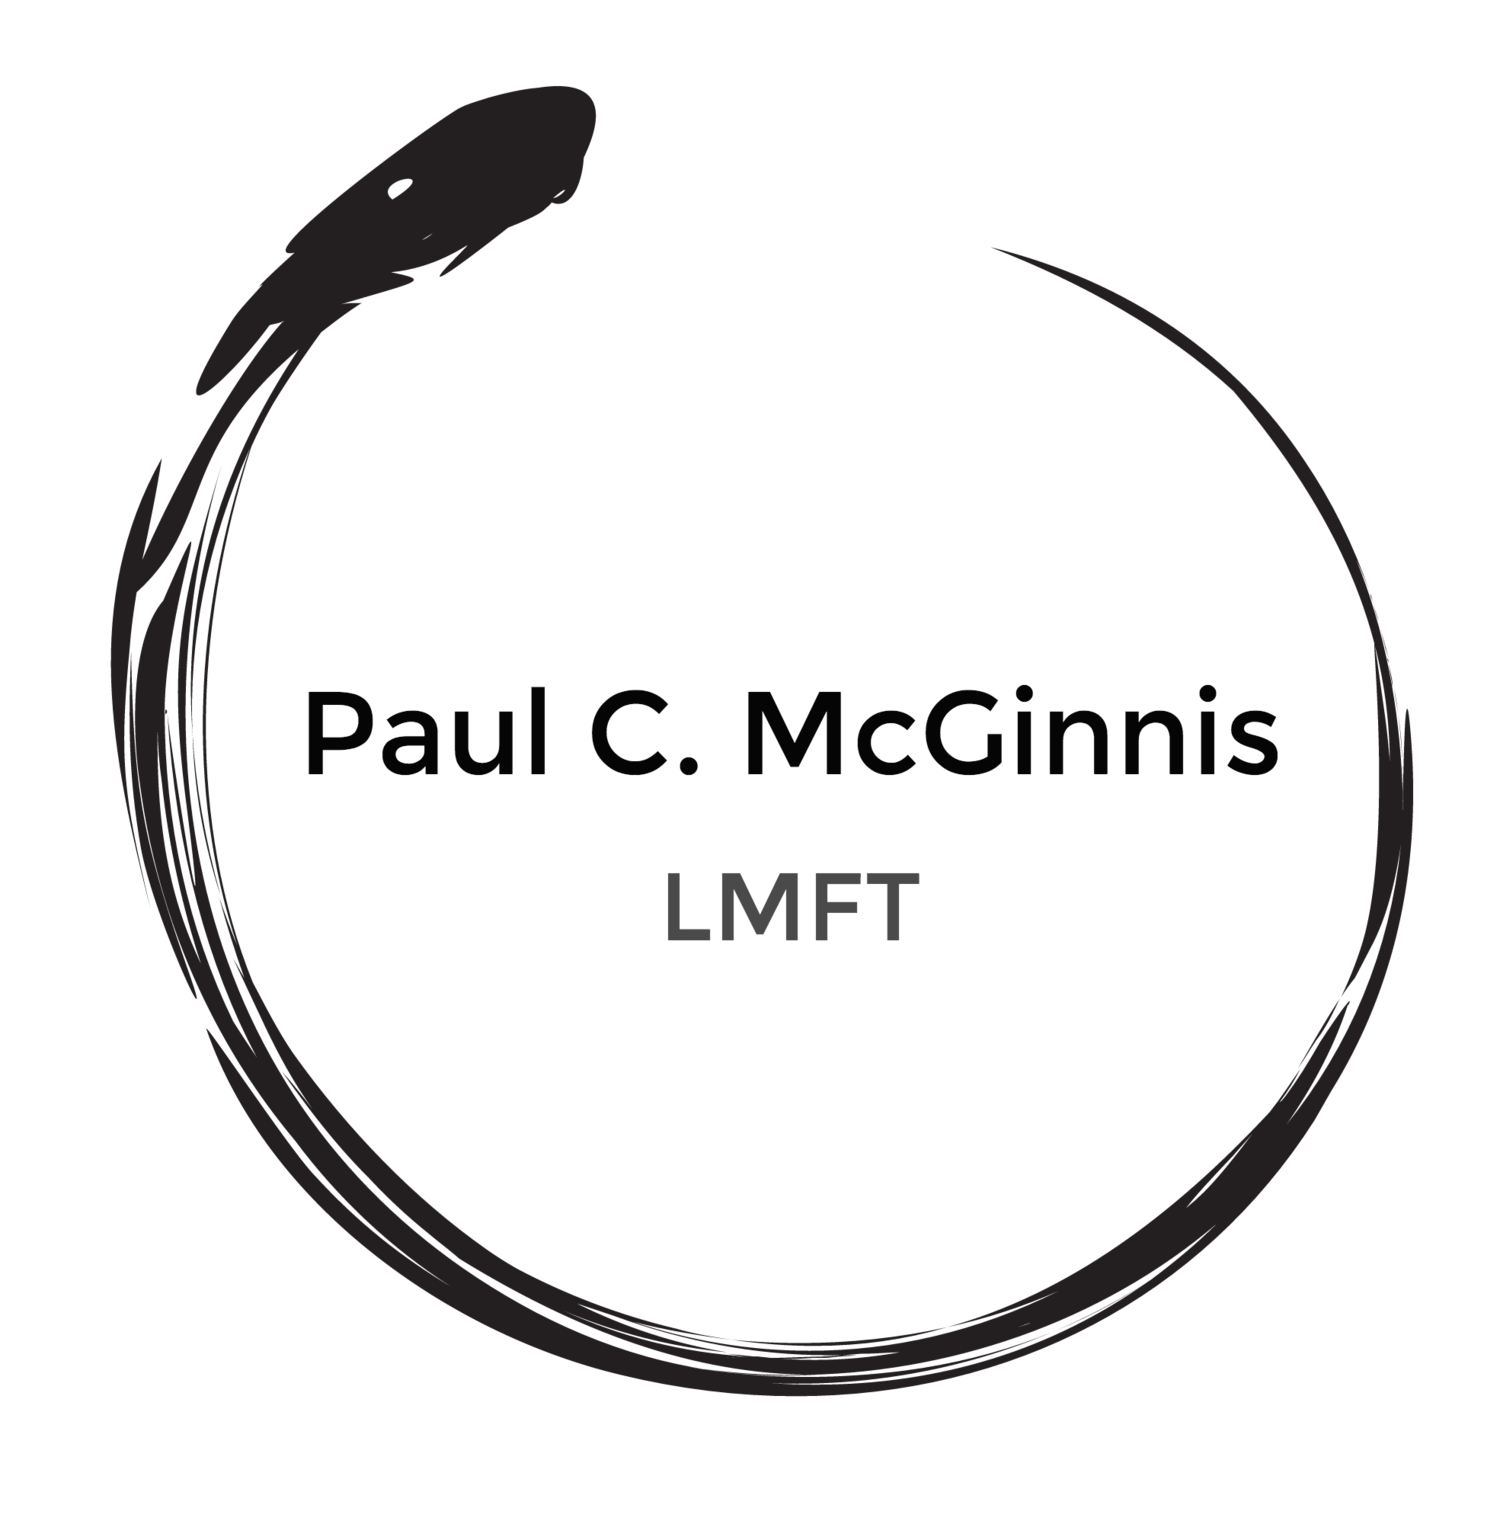 Paul C. McGinnis, M.A., LMFT